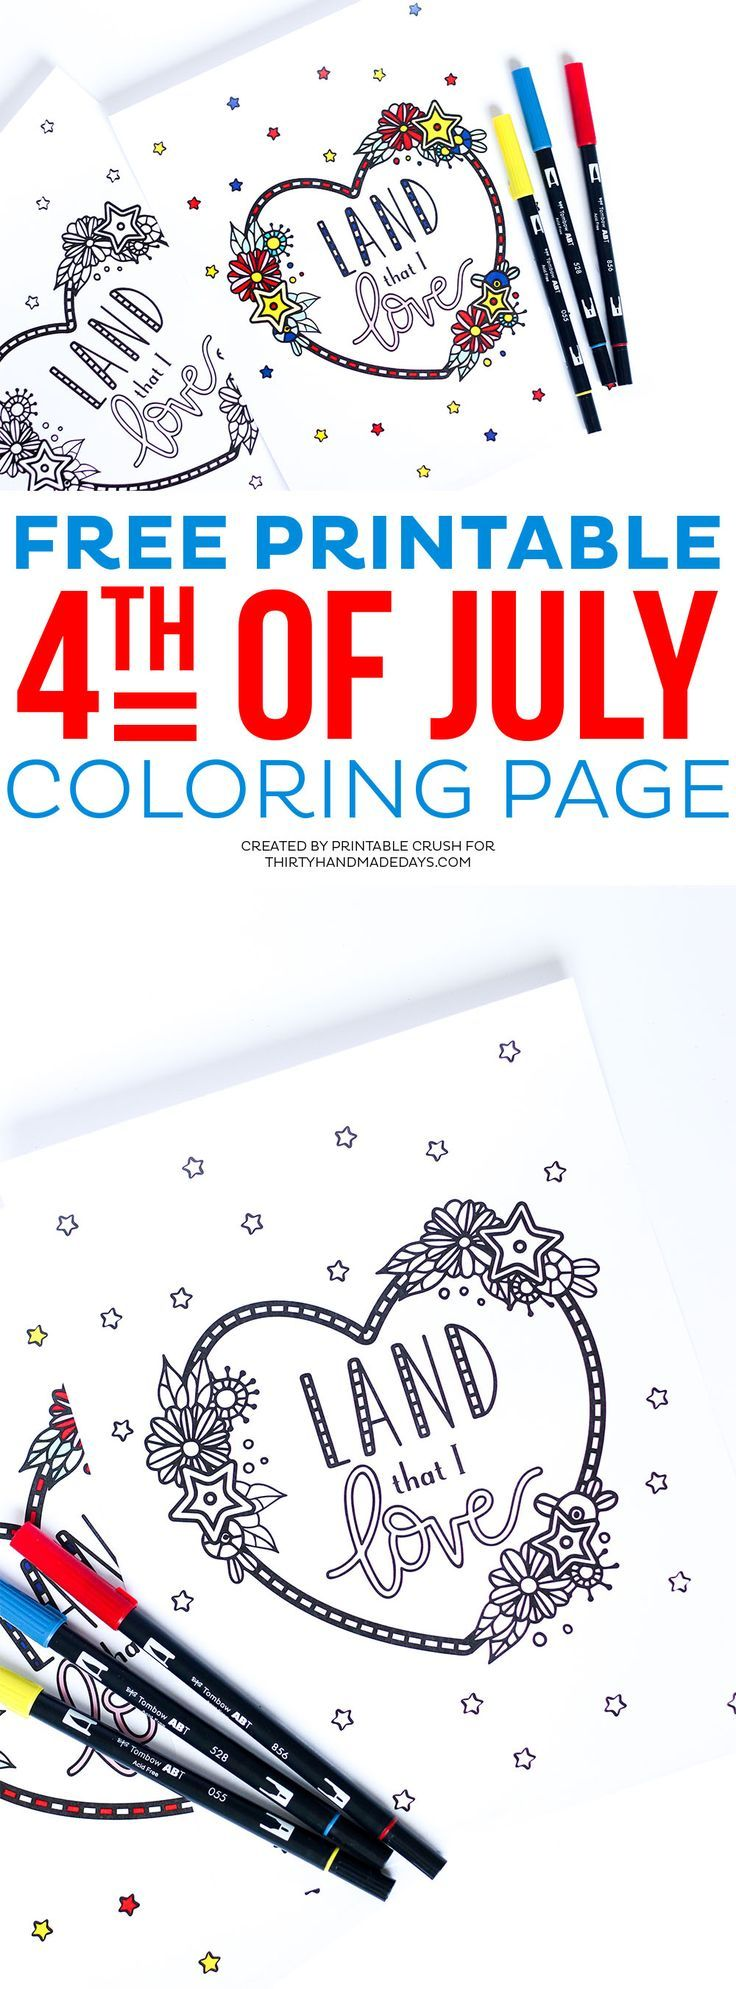 4th of July Coloring Page | Free printable, Free and Holidays